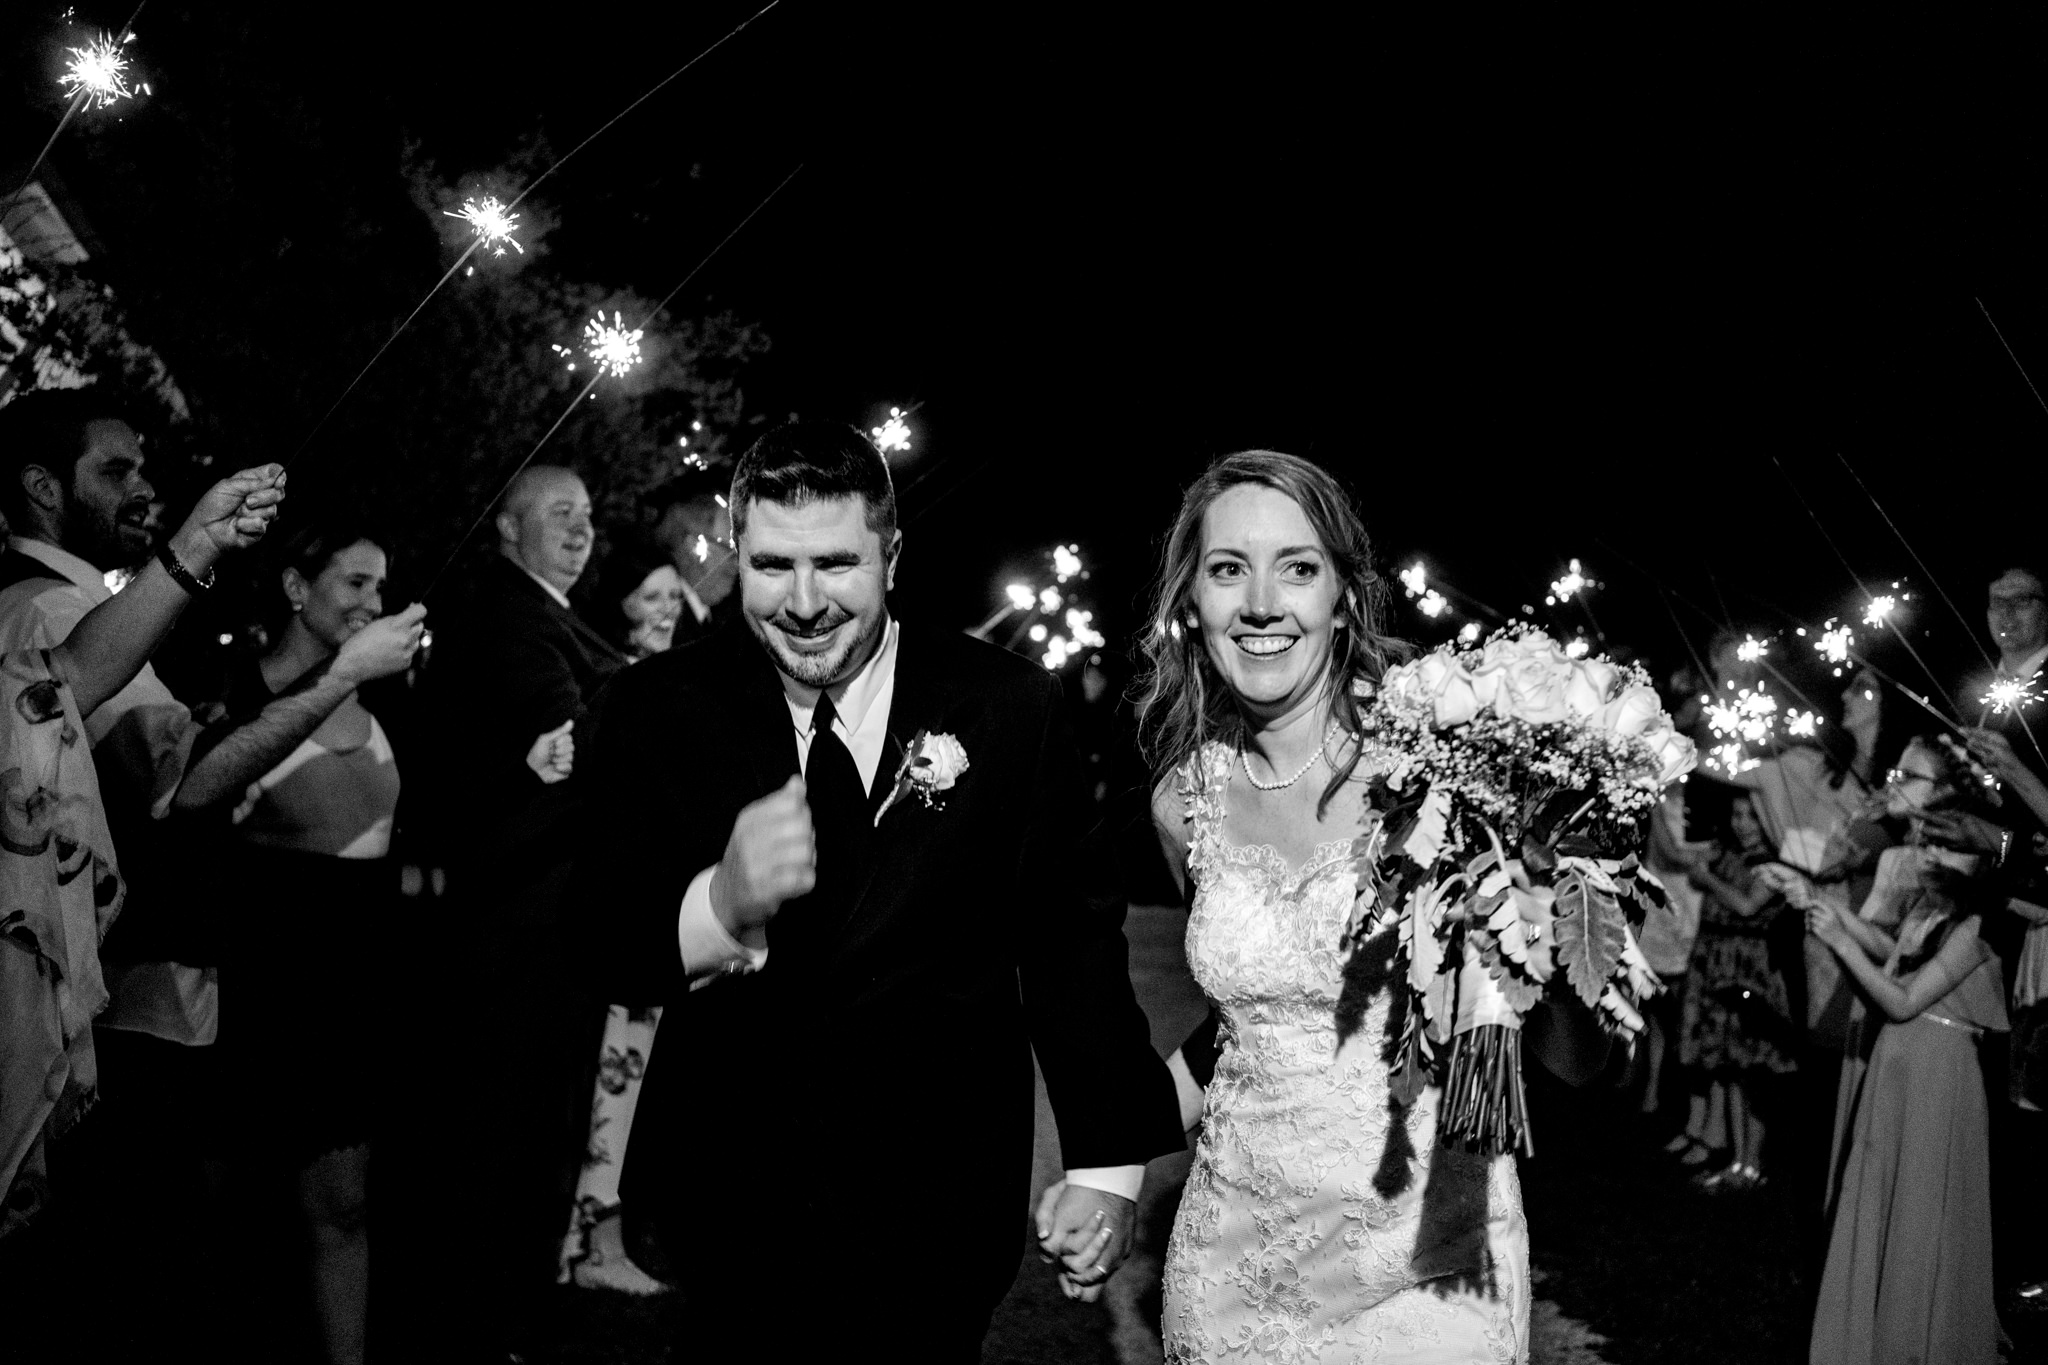 Springfield Manor Winery and Distillery Thornton MD Spring Wedding Photography by Bee Two Sweet-17.jpg